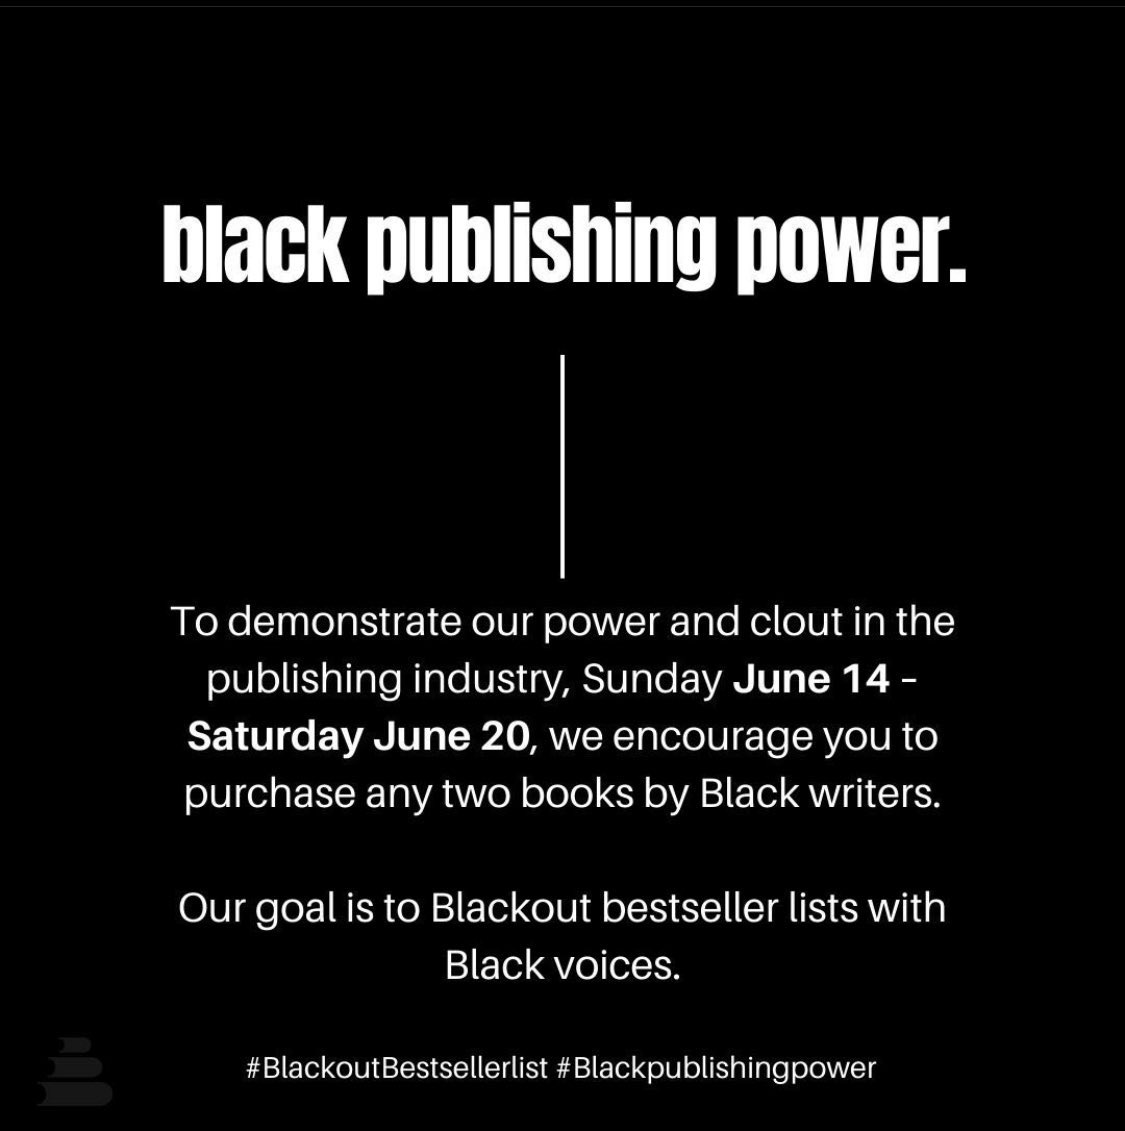 test Twitter Media - RT @likaluca: Do we have a good Black Trans book list going? Either way, let's get one going here! https://t.co/cF1GrAKL1U